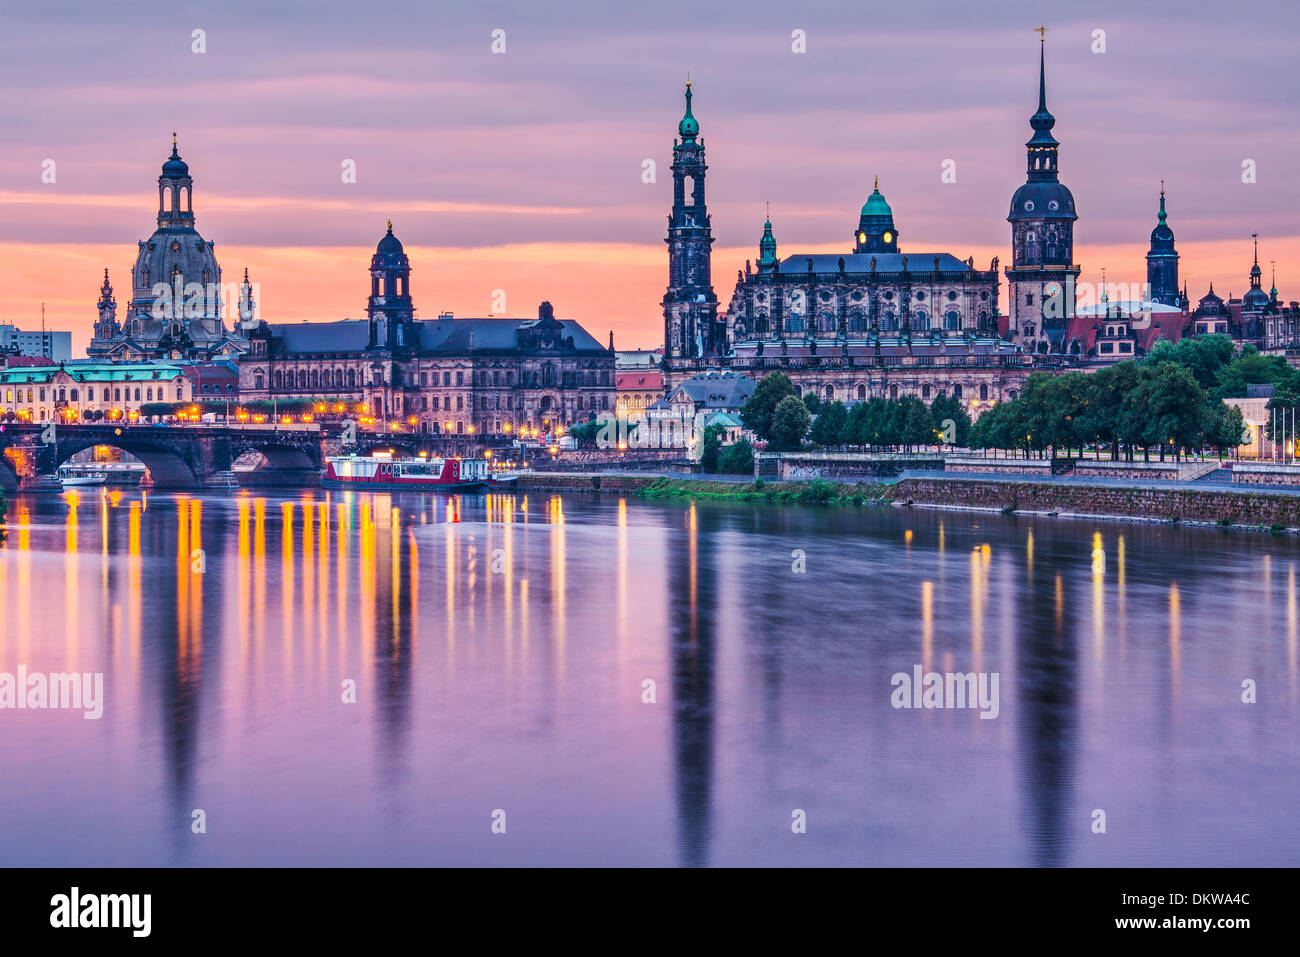 Dresden, Germany above the Elbe River at dawn. - Stock Image